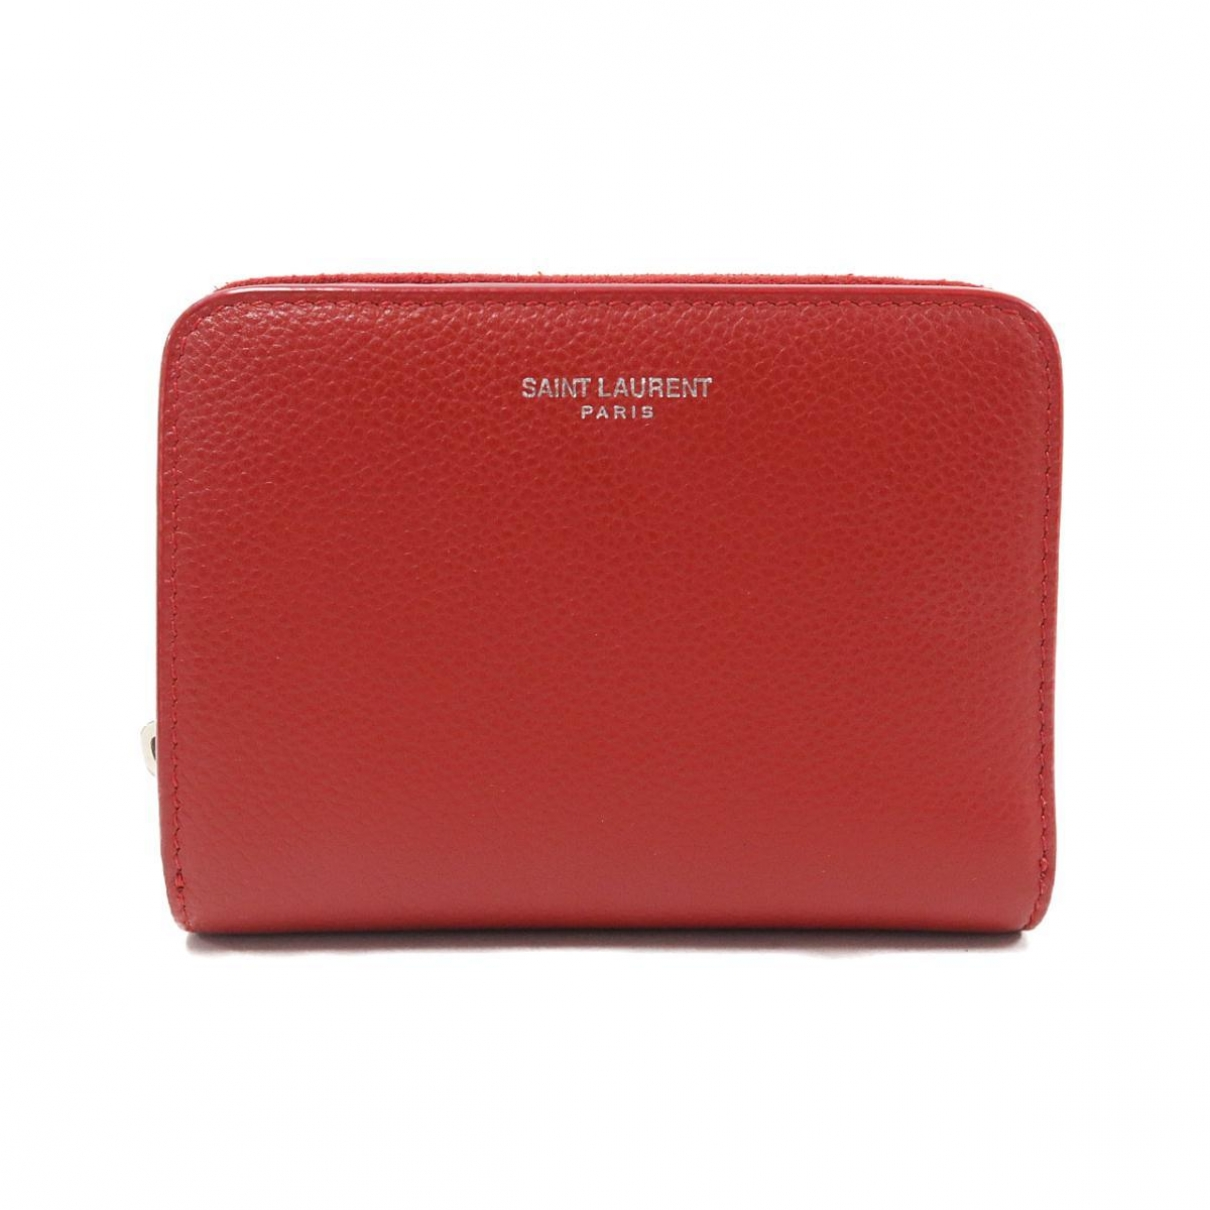 Saint Laurent \N Portemonnaie in  Rot Leder